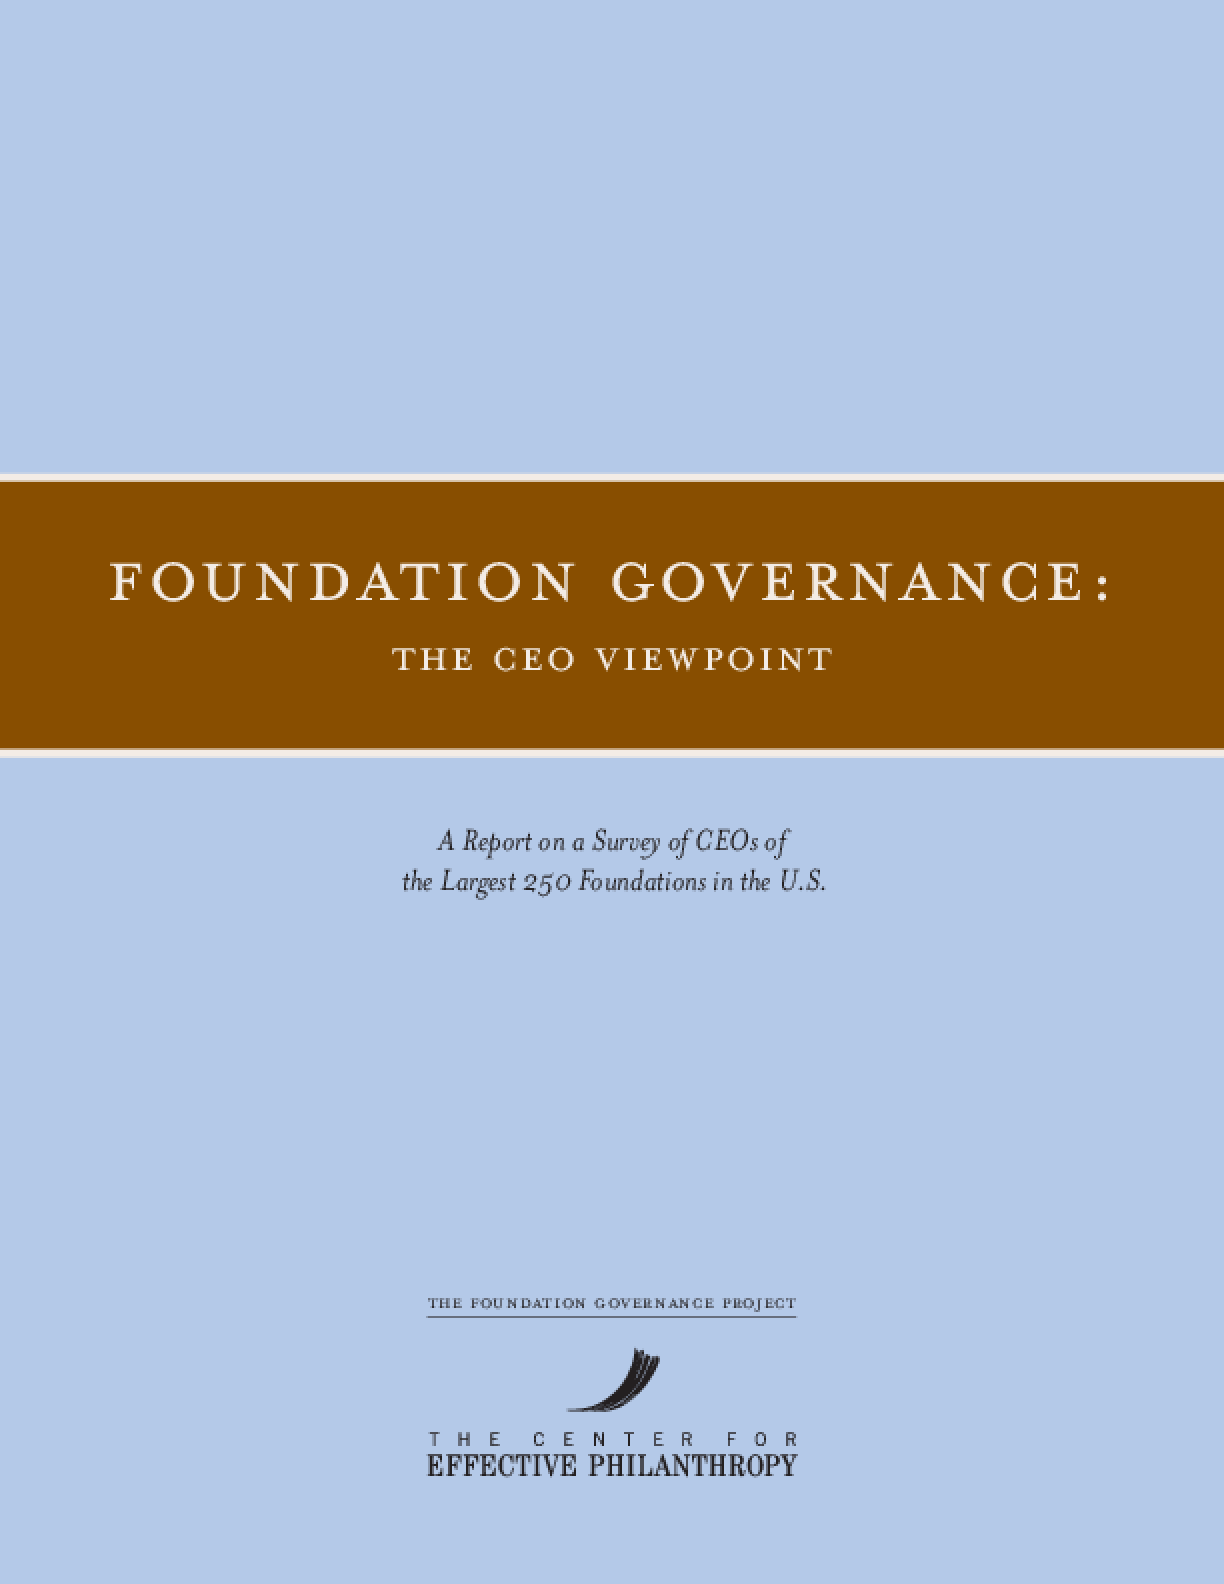 Foundation Governance: The CEO Viewpoint